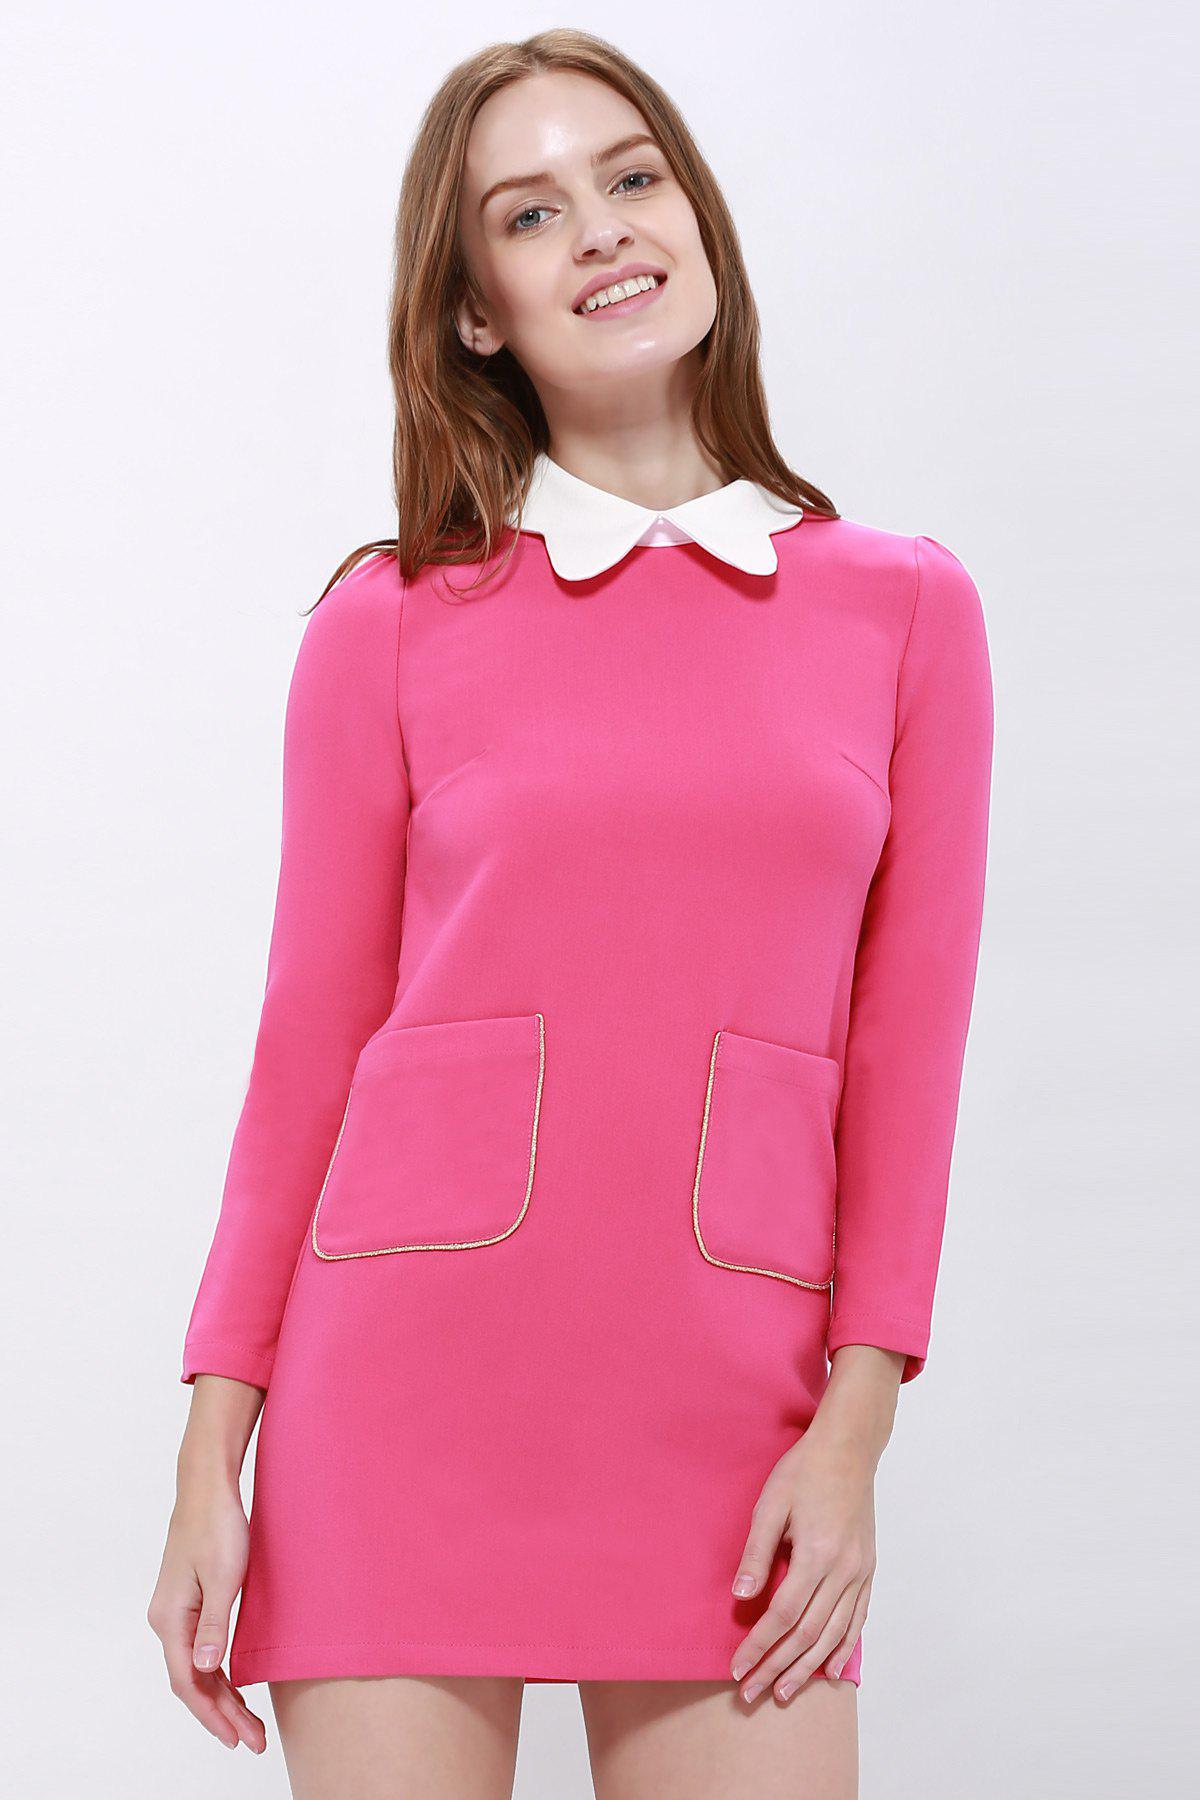 Trendy Simple Design Peter Pan Collar Pockets Embellished Long Sleeve Cotton Blend Women's Dress